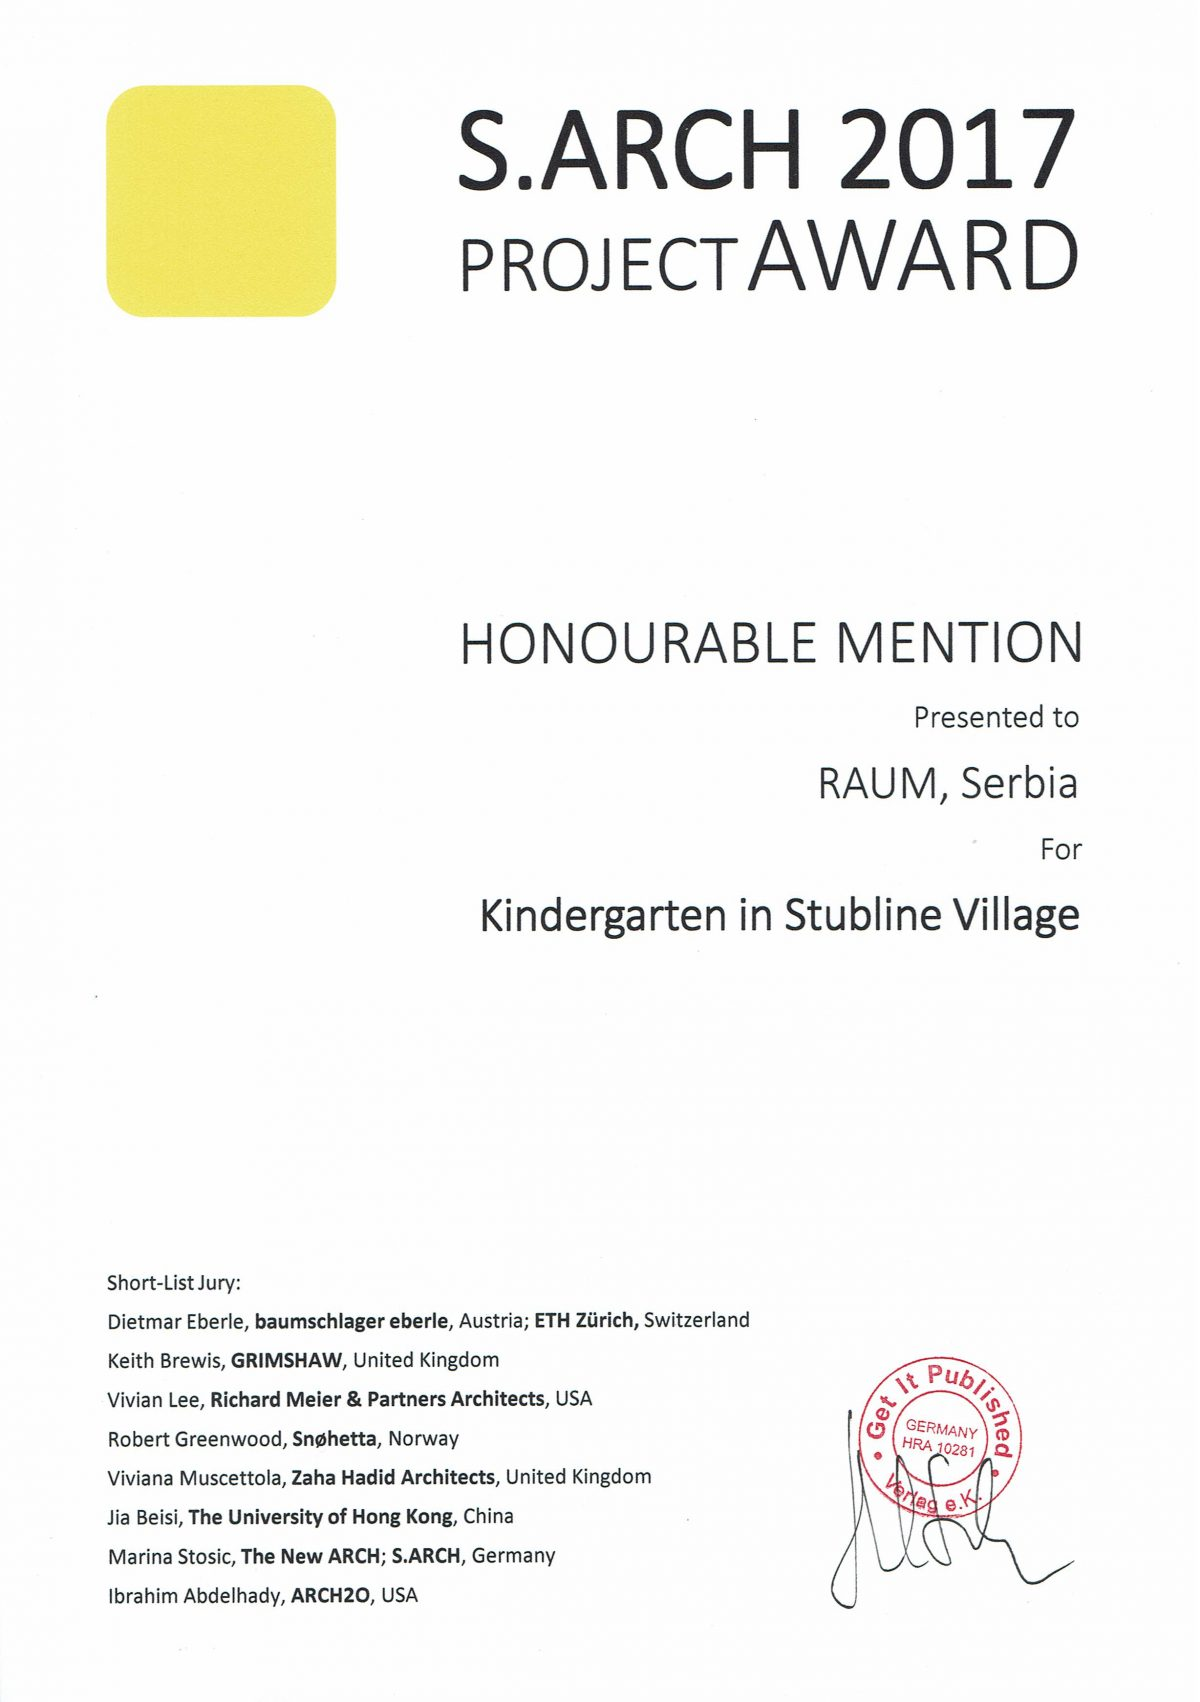 raum received a honorable mention in hong kong